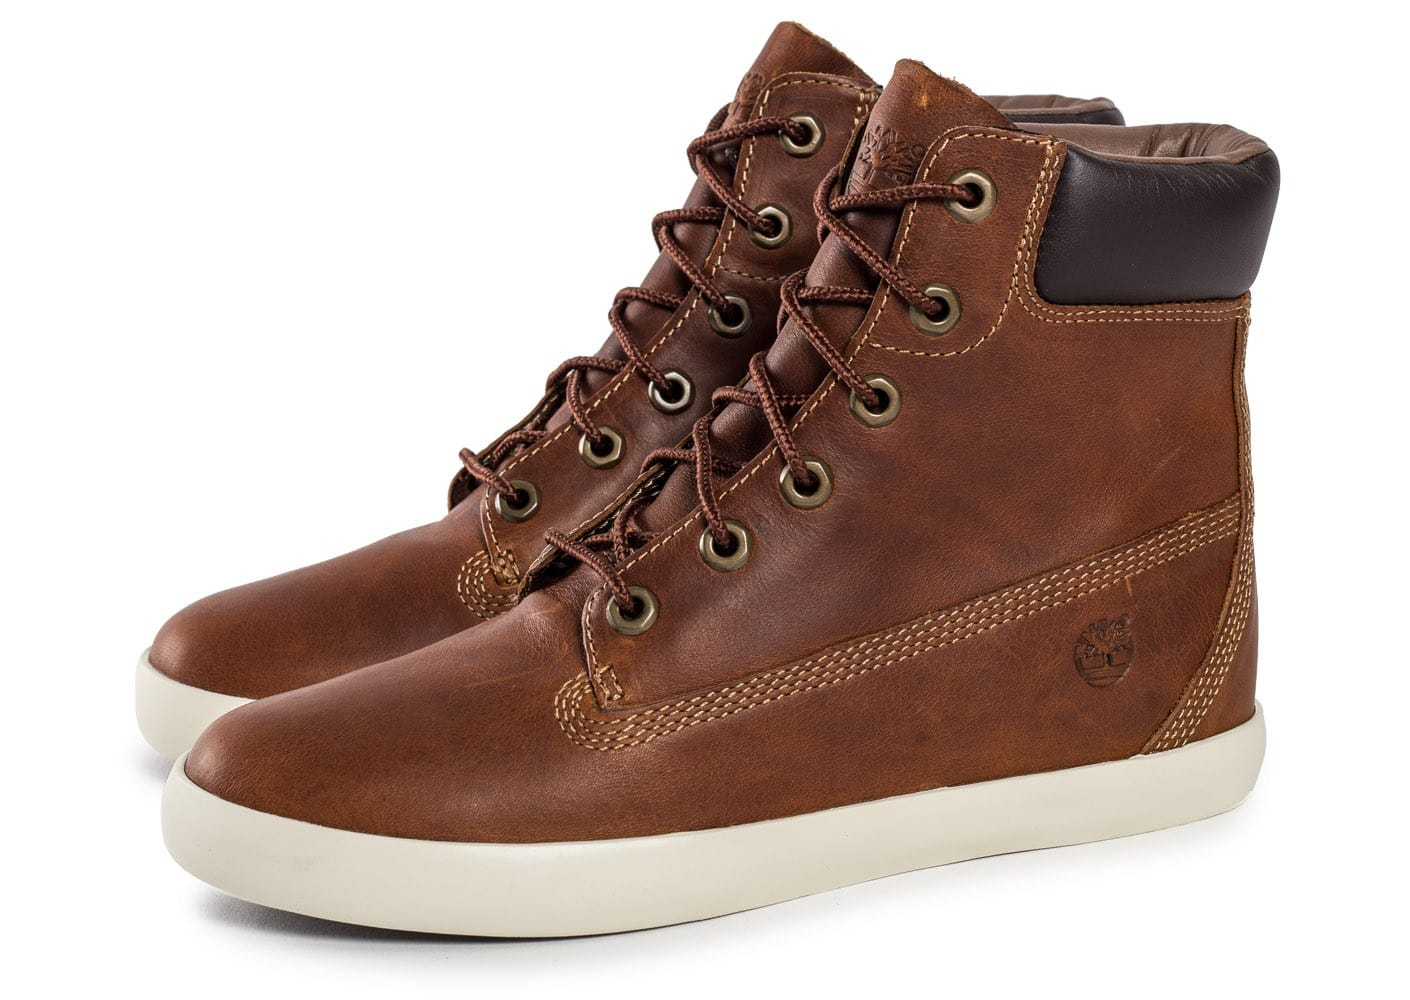 chaussures timberland homme strasbourg chaussure timberland semelle pas cher. Black Bedroom Furniture Sets. Home Design Ideas